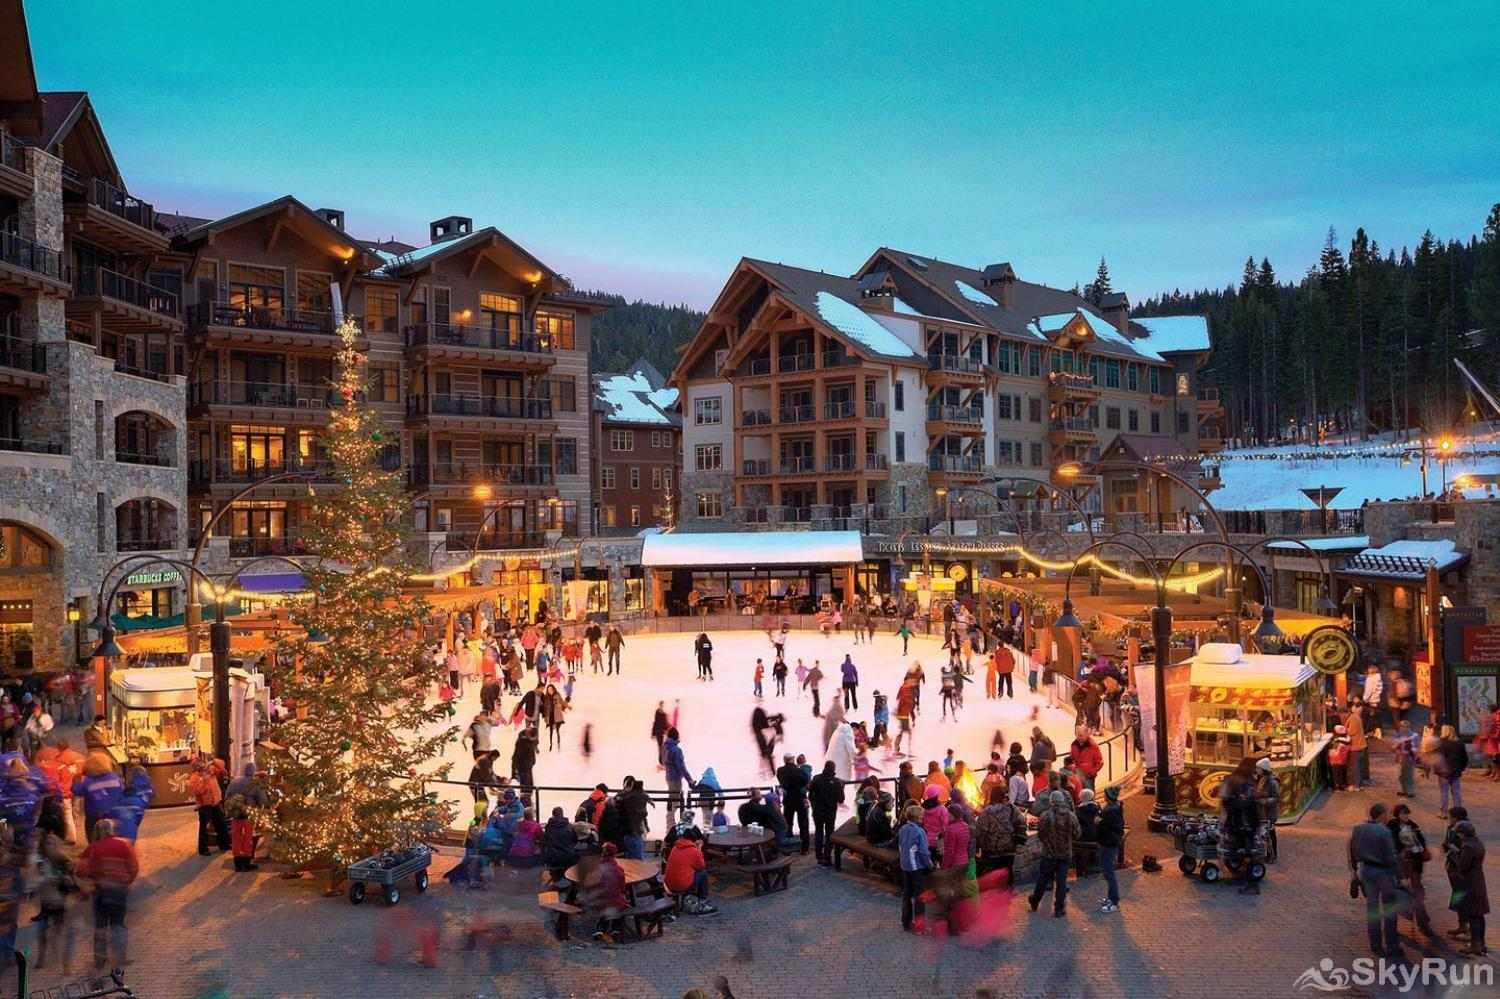 Bear Lodge at Northstar The Village at Northstar - Ice Rink